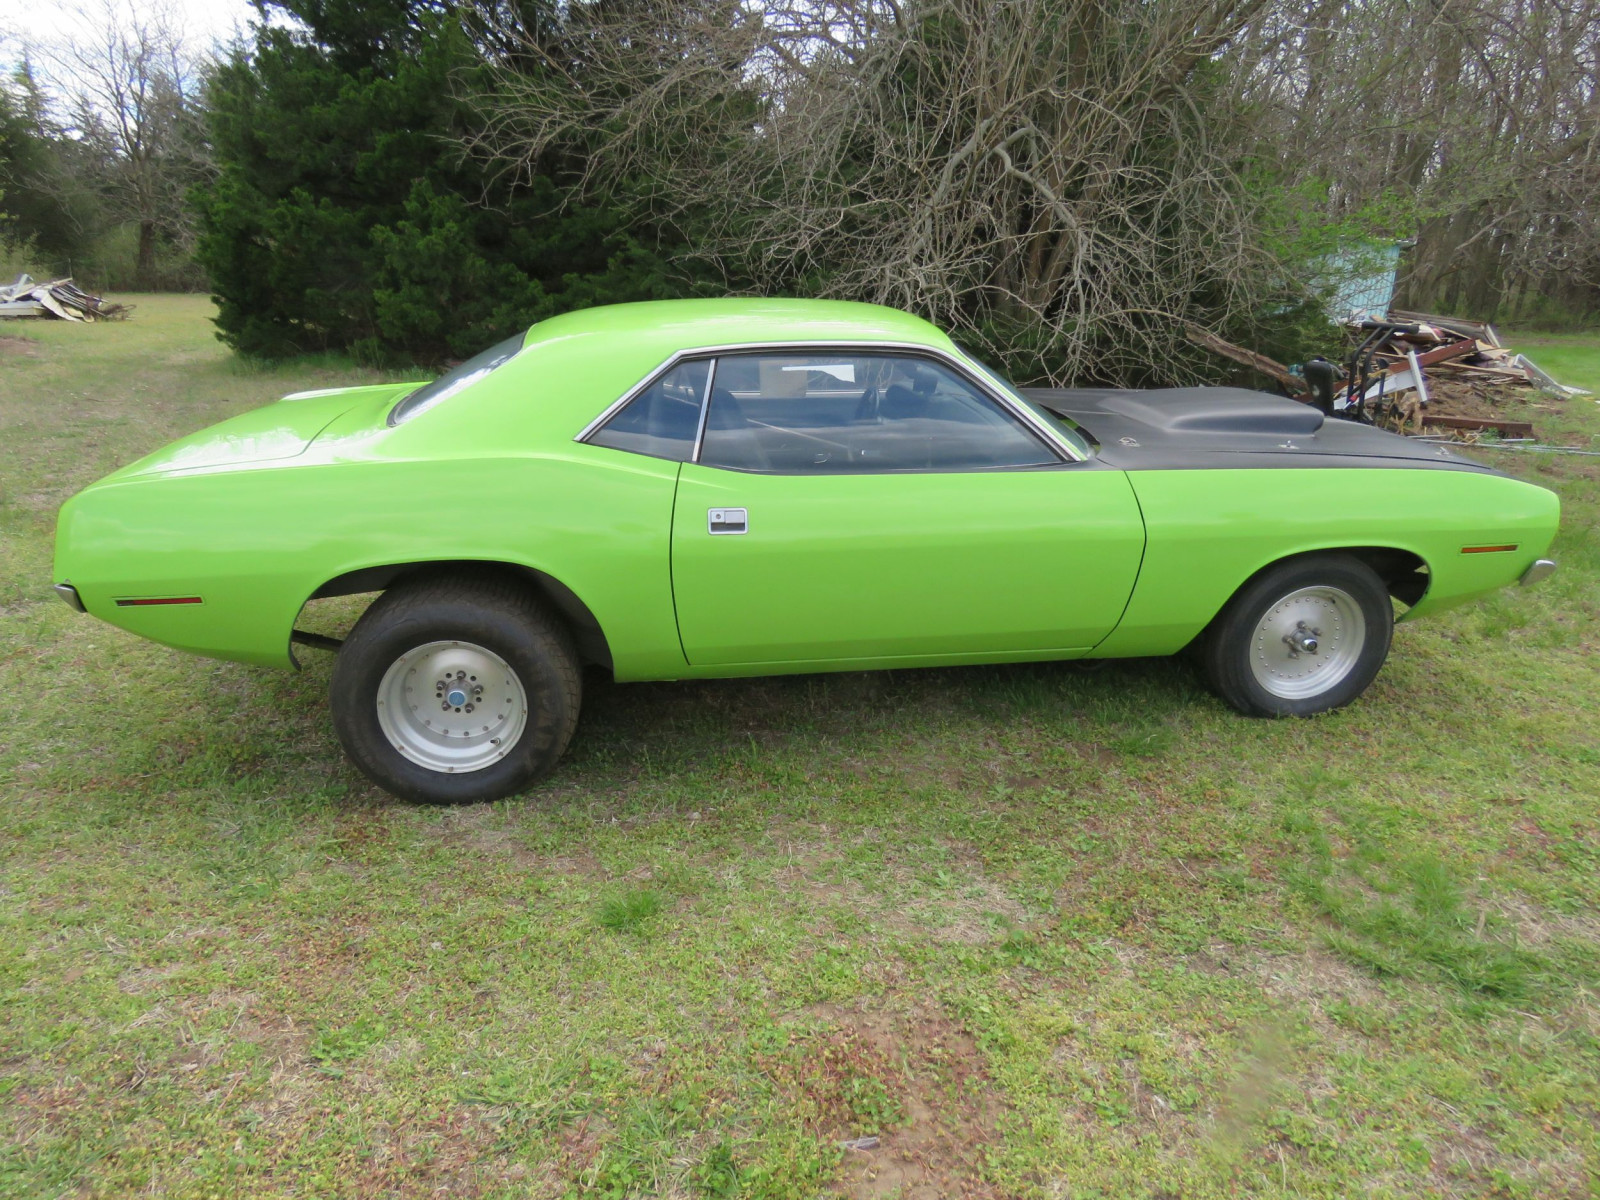 1970 PLYMOUTH CUDA DRAG CAR - Image 11